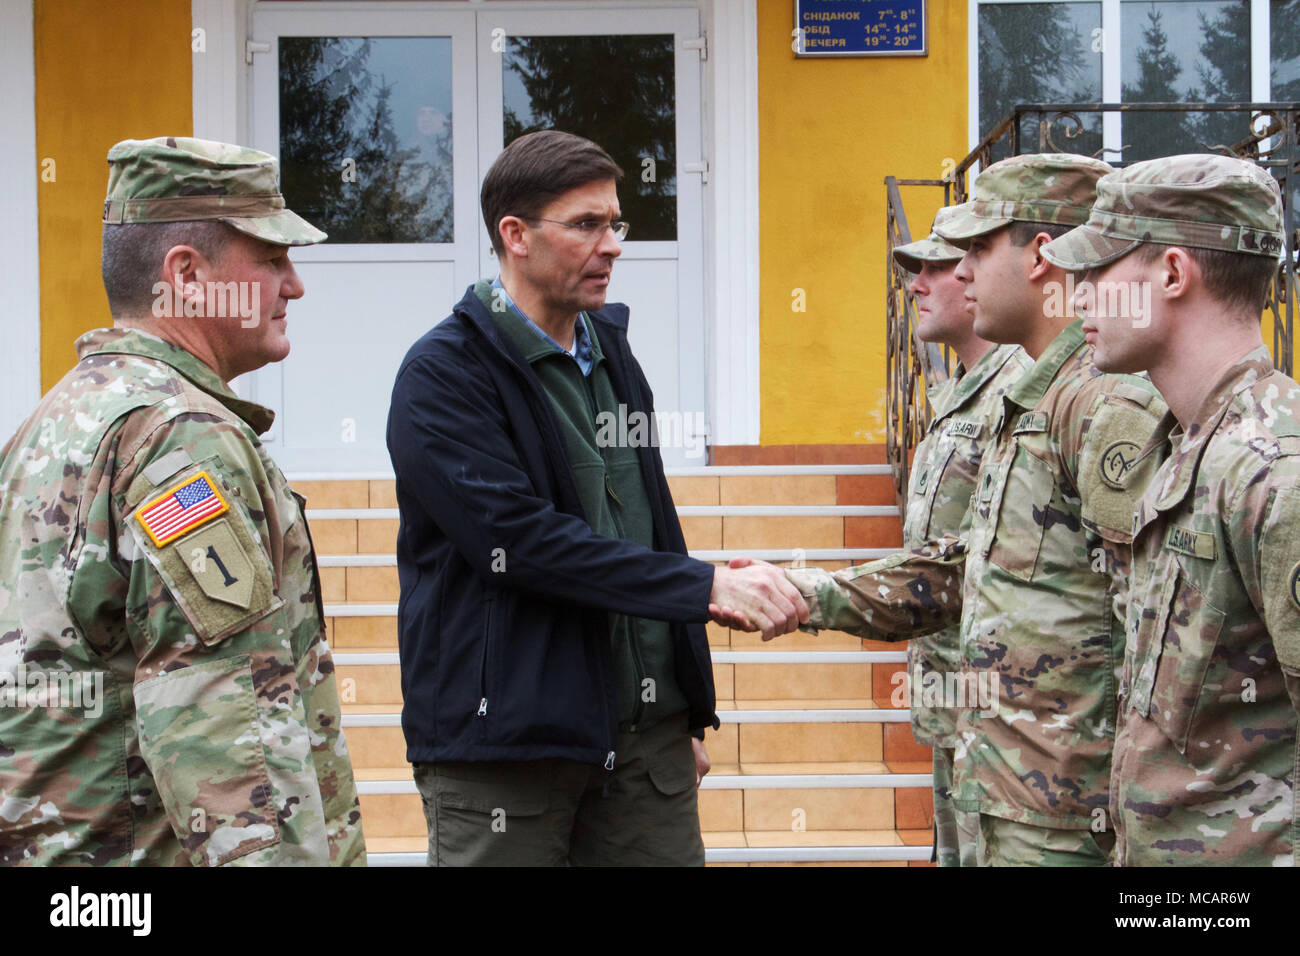 Yavoriv, Ukraine – Mark T. Esper, the United States Secretary of the Army presents a challenge coin to Spc. Kevin Morales, a motor transport operator assigned to the Joint Multinational Training Group – Ukraine during a visit to the Yavoriv Combat Training Center here Feb. 2. Currently more than 220 Soldiers from New York's 27th Infantry Brigade Combat Team are deployed to Ukraine where they are working hand-in-hand with the Ukrainian Army as they strive toward obtaining its goal of NATO interoperability. (U.S. Army photo by Sgt. Alexander Rector) Stock Photo